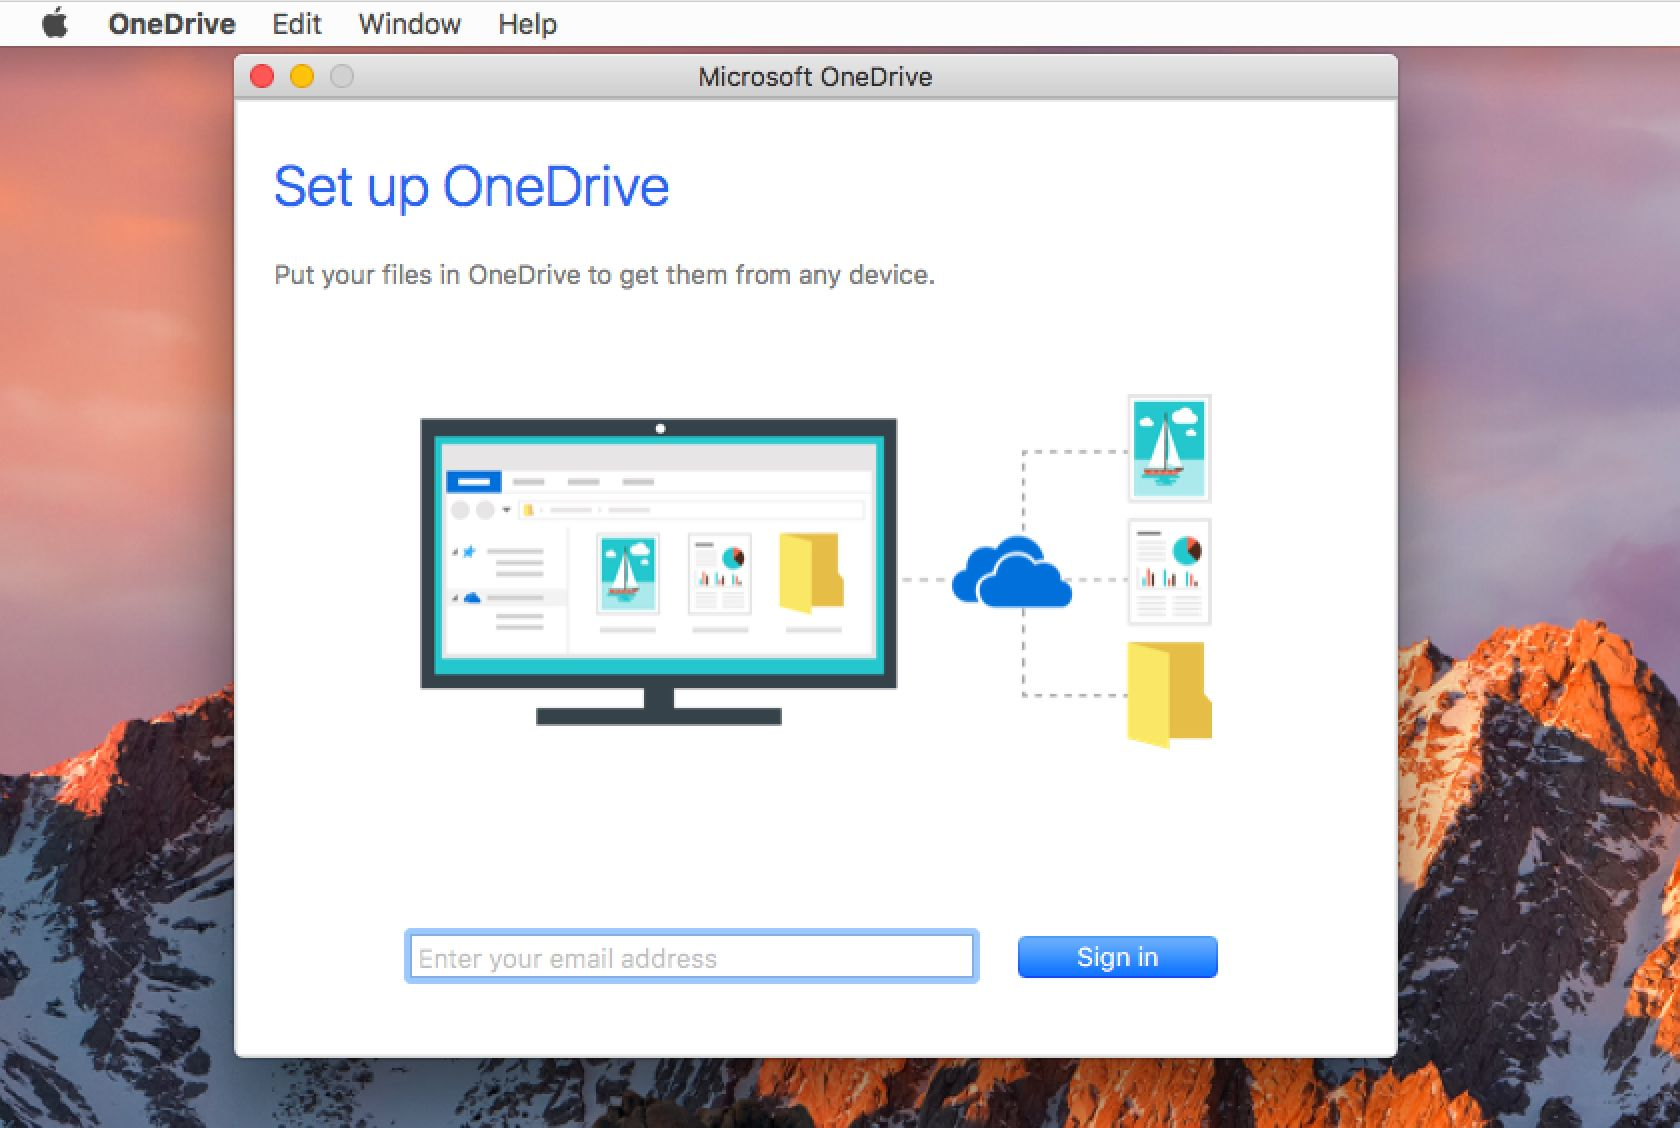 How to Set up Microsoft OneDrive for Mac